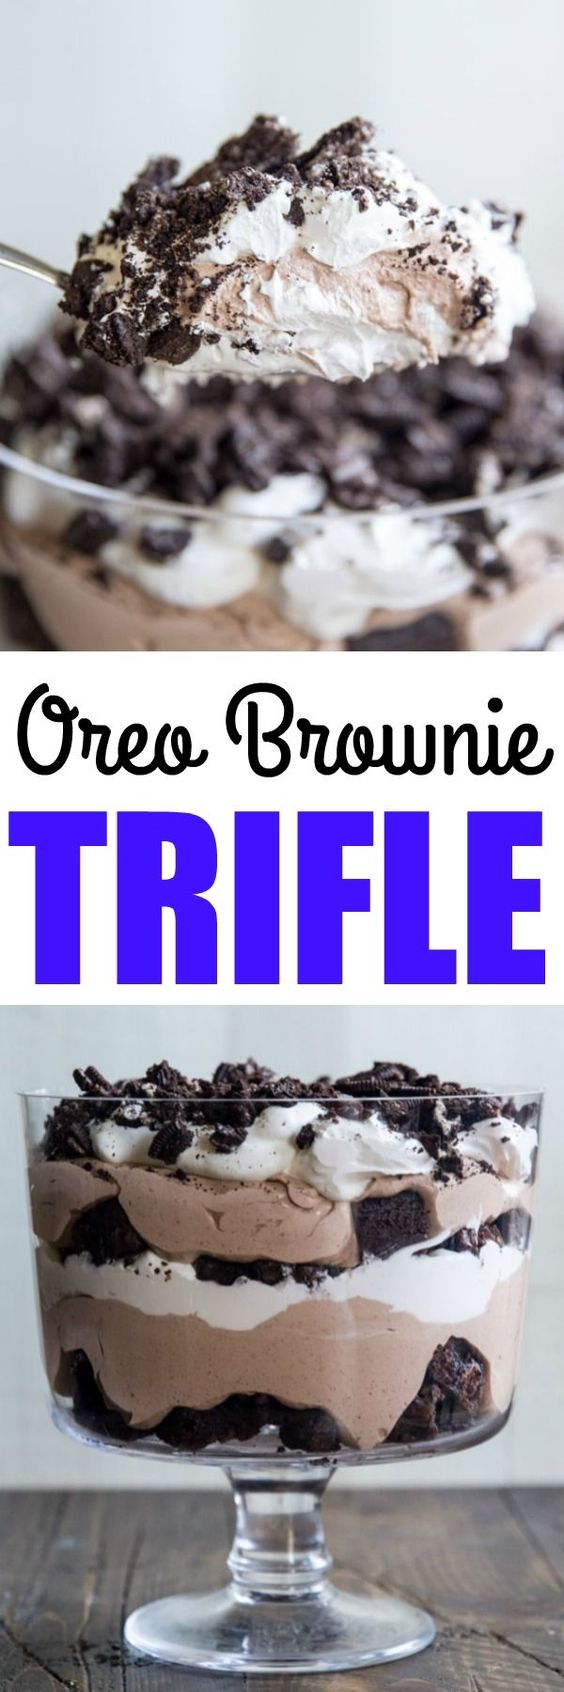 A foursquare photograph showing the Oreo Brownie Trifle from the side Sweet Oreo Brownie Trifle